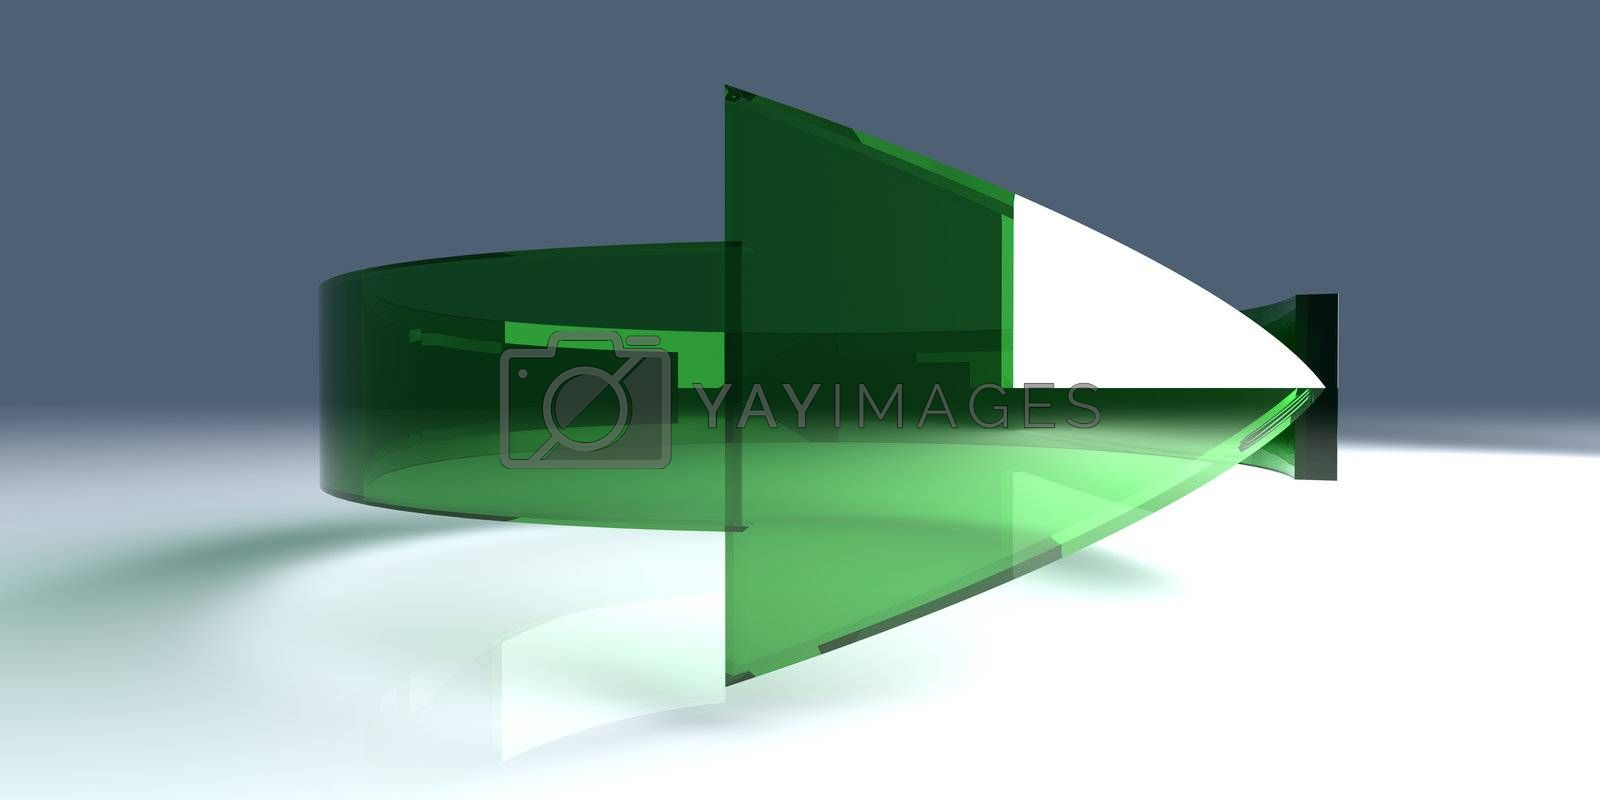 3D rendered Illustration. An arrow symbolizing an repeating process such as recycling (ecological concept) or reload of data.